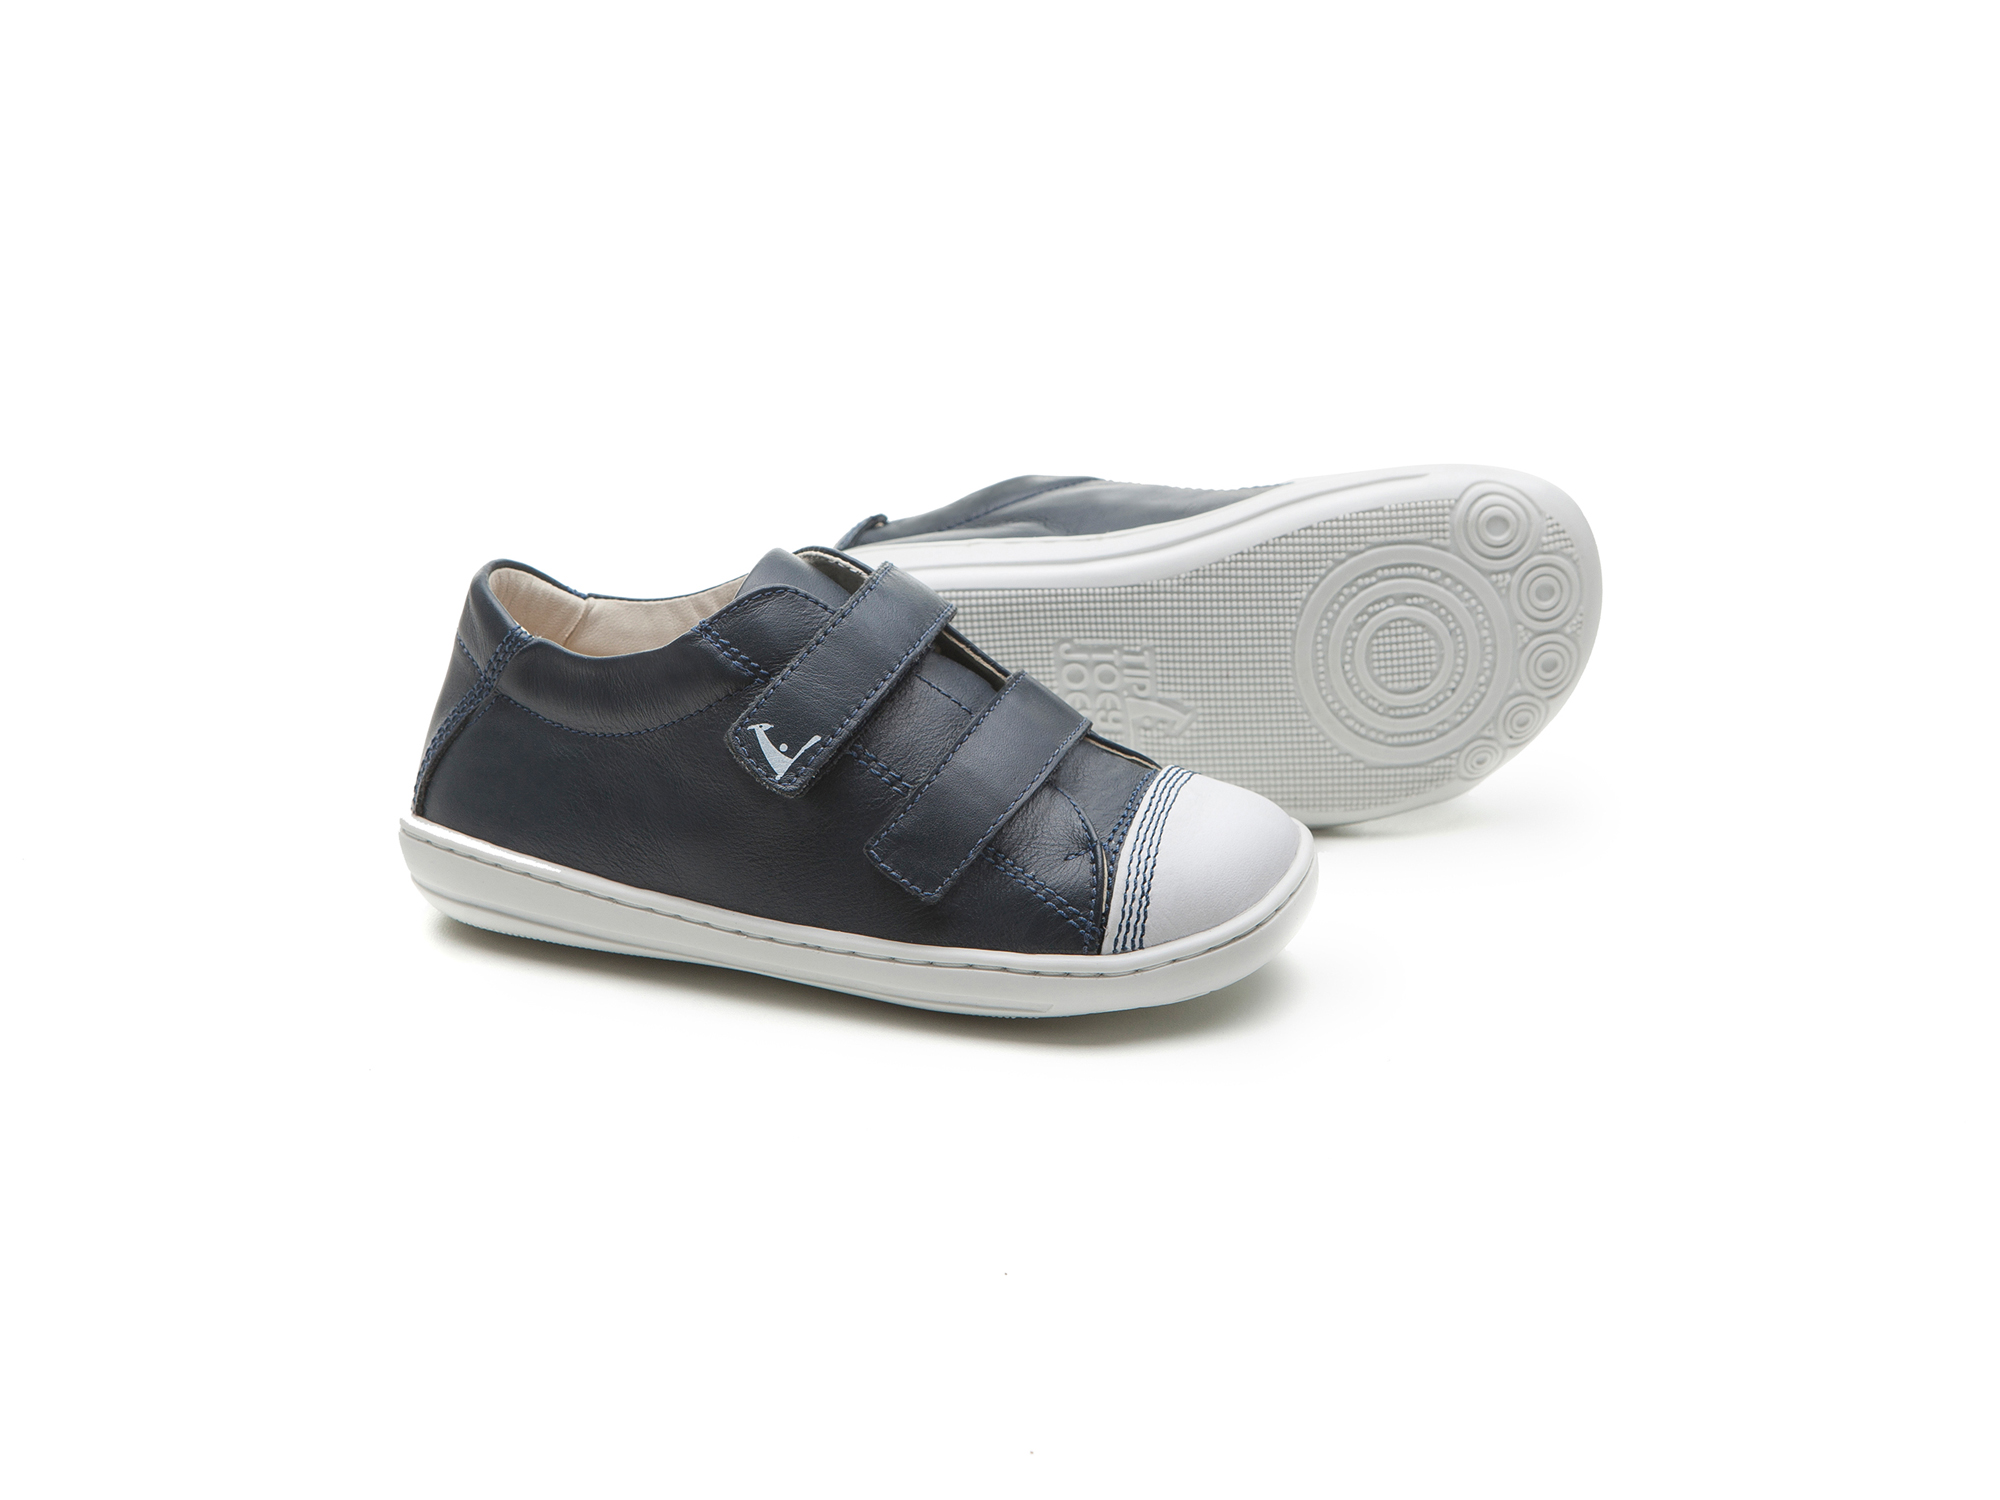 Tênis New Hunch Navy/ White Toddler 2 à 4 anos - 2